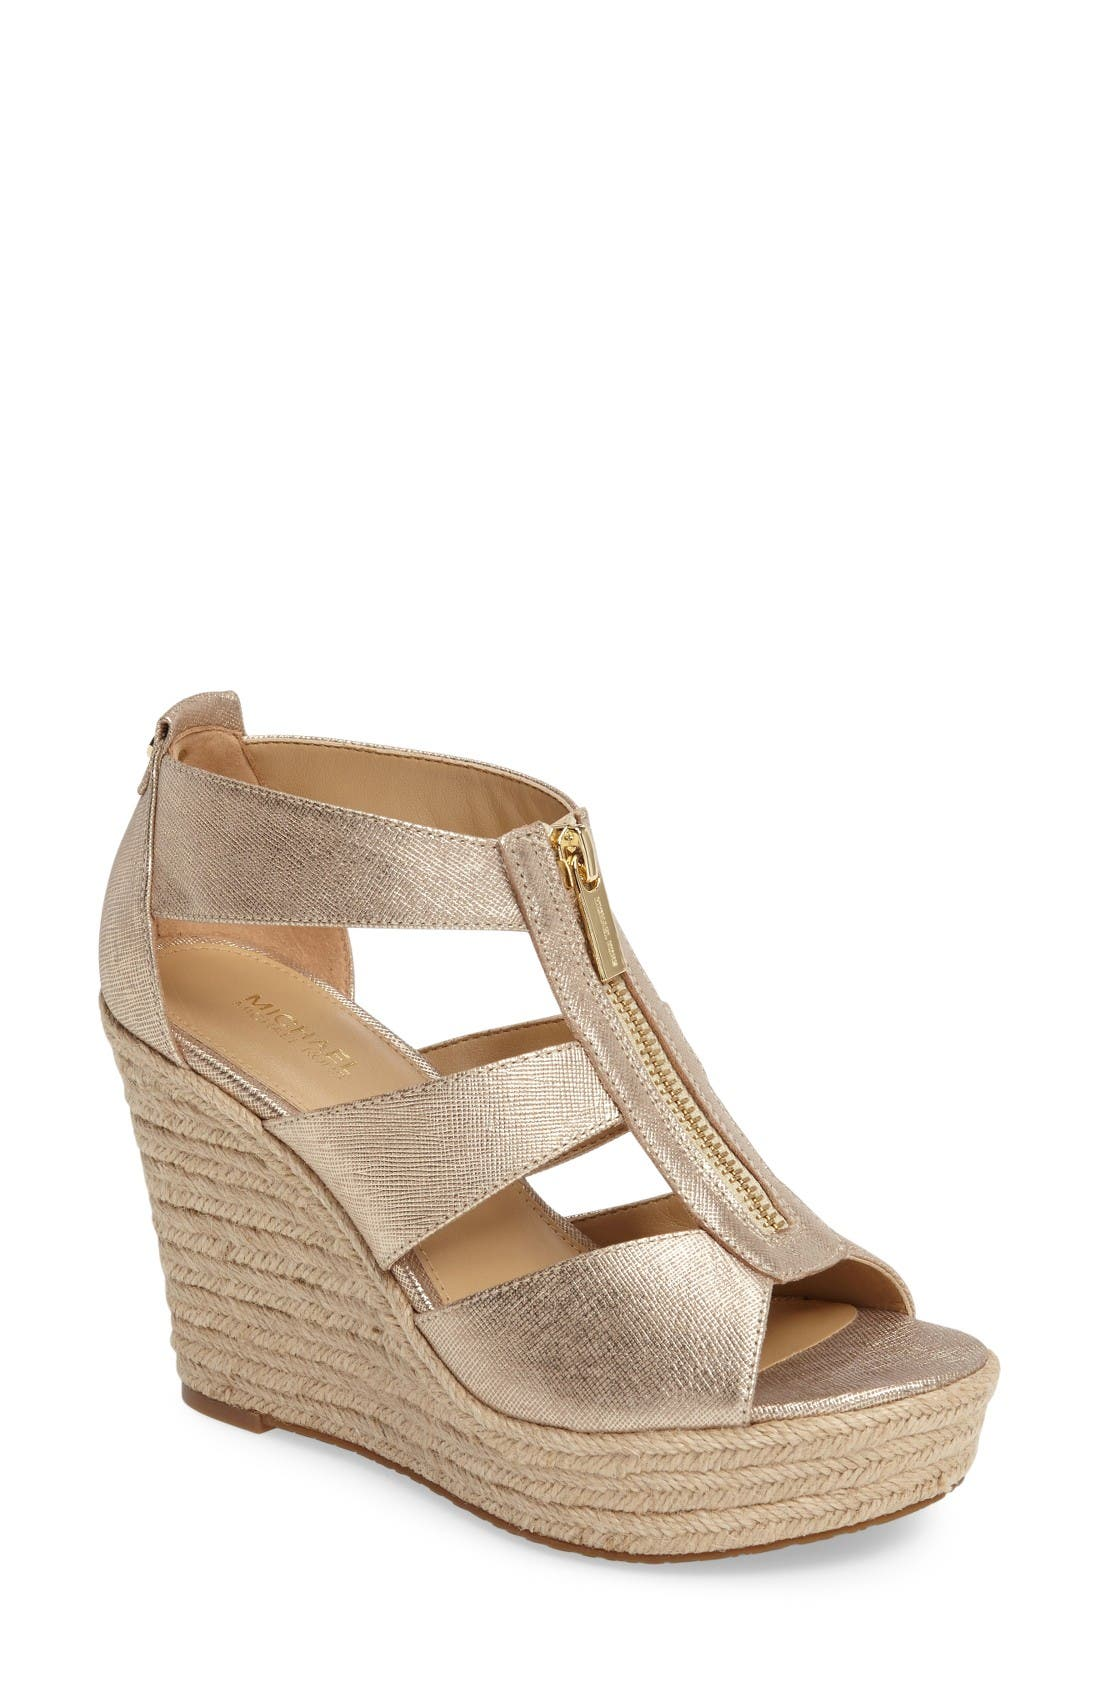 Alternate Image 1 Selected - MICHAEL Michael Kors 'Damita' Wedge Sandal (Women)